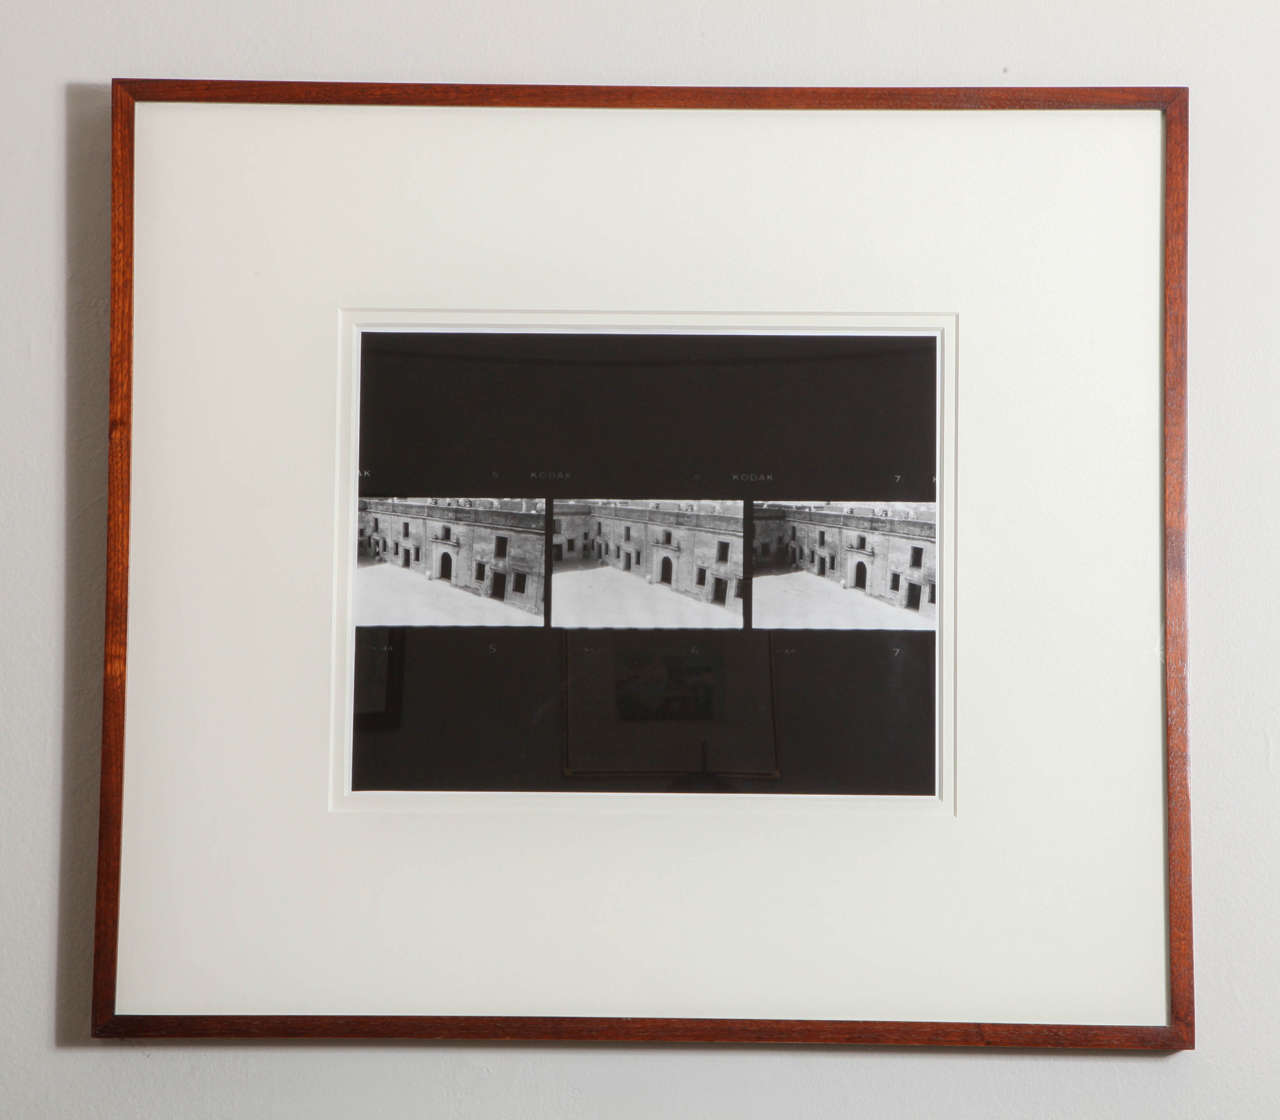 Two Framed Photographic Prints by Thomas League 2